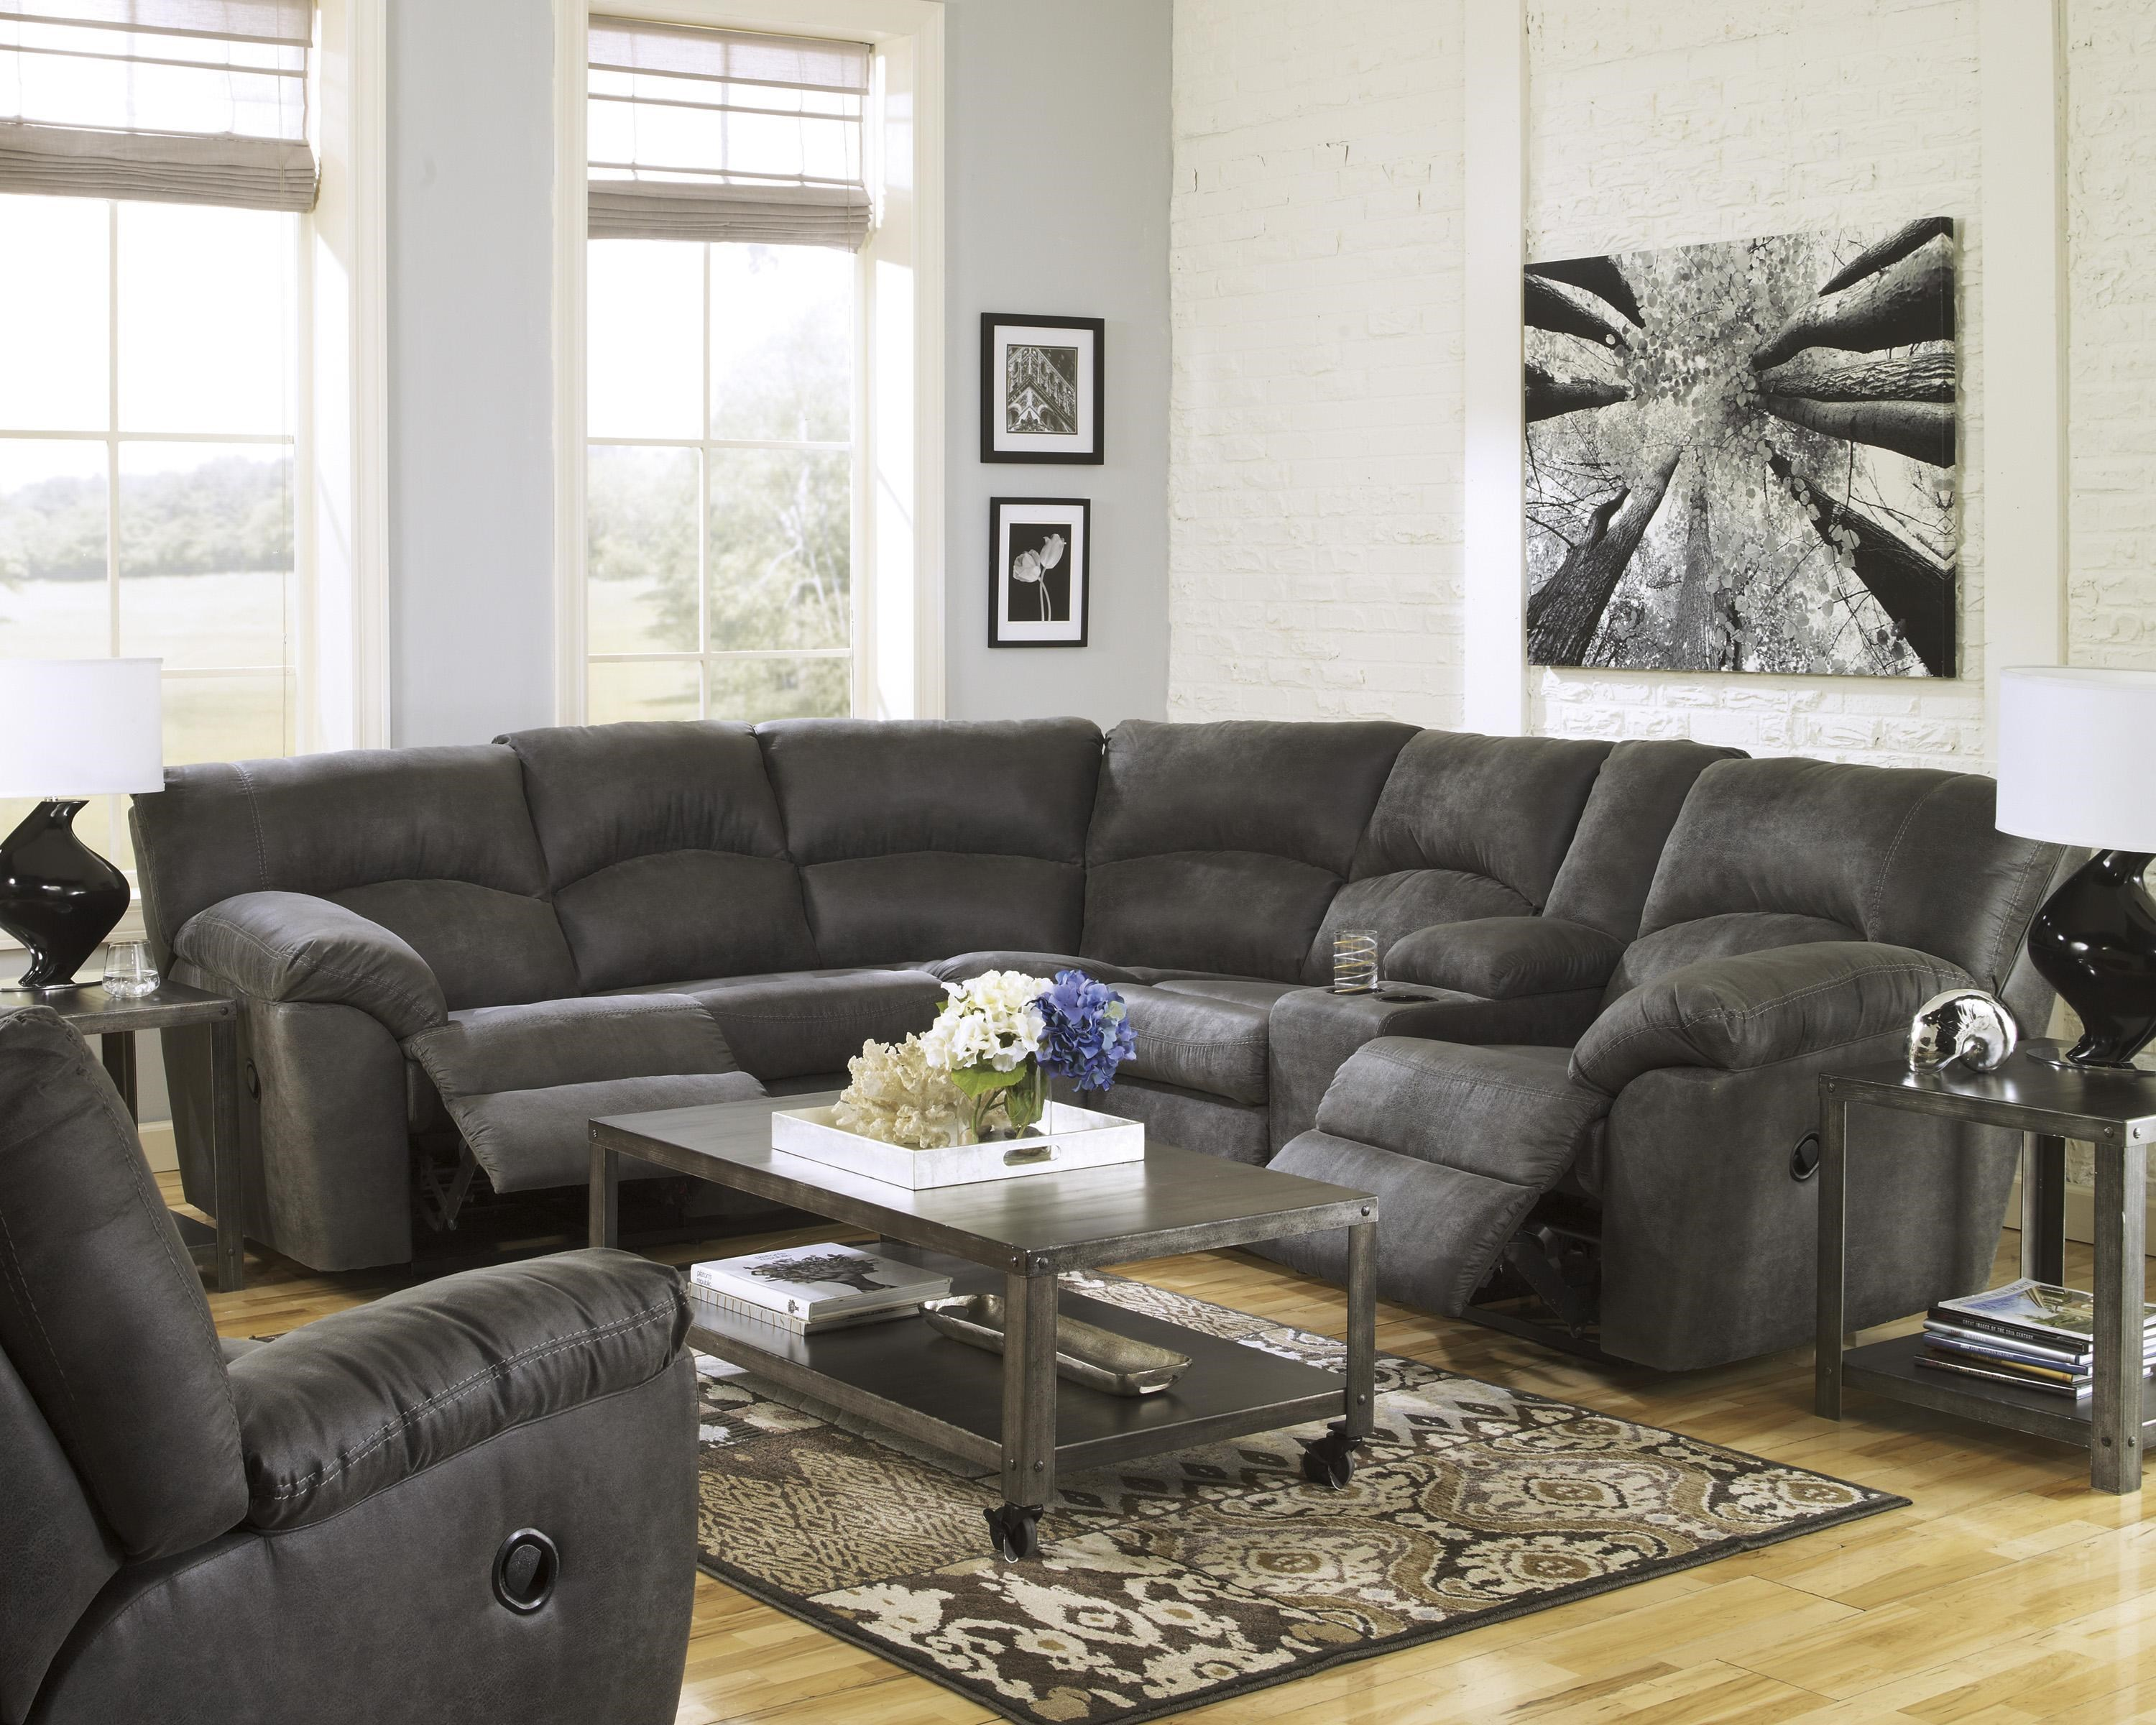 2 Piece Reclining Corner Sectional with Center Console by